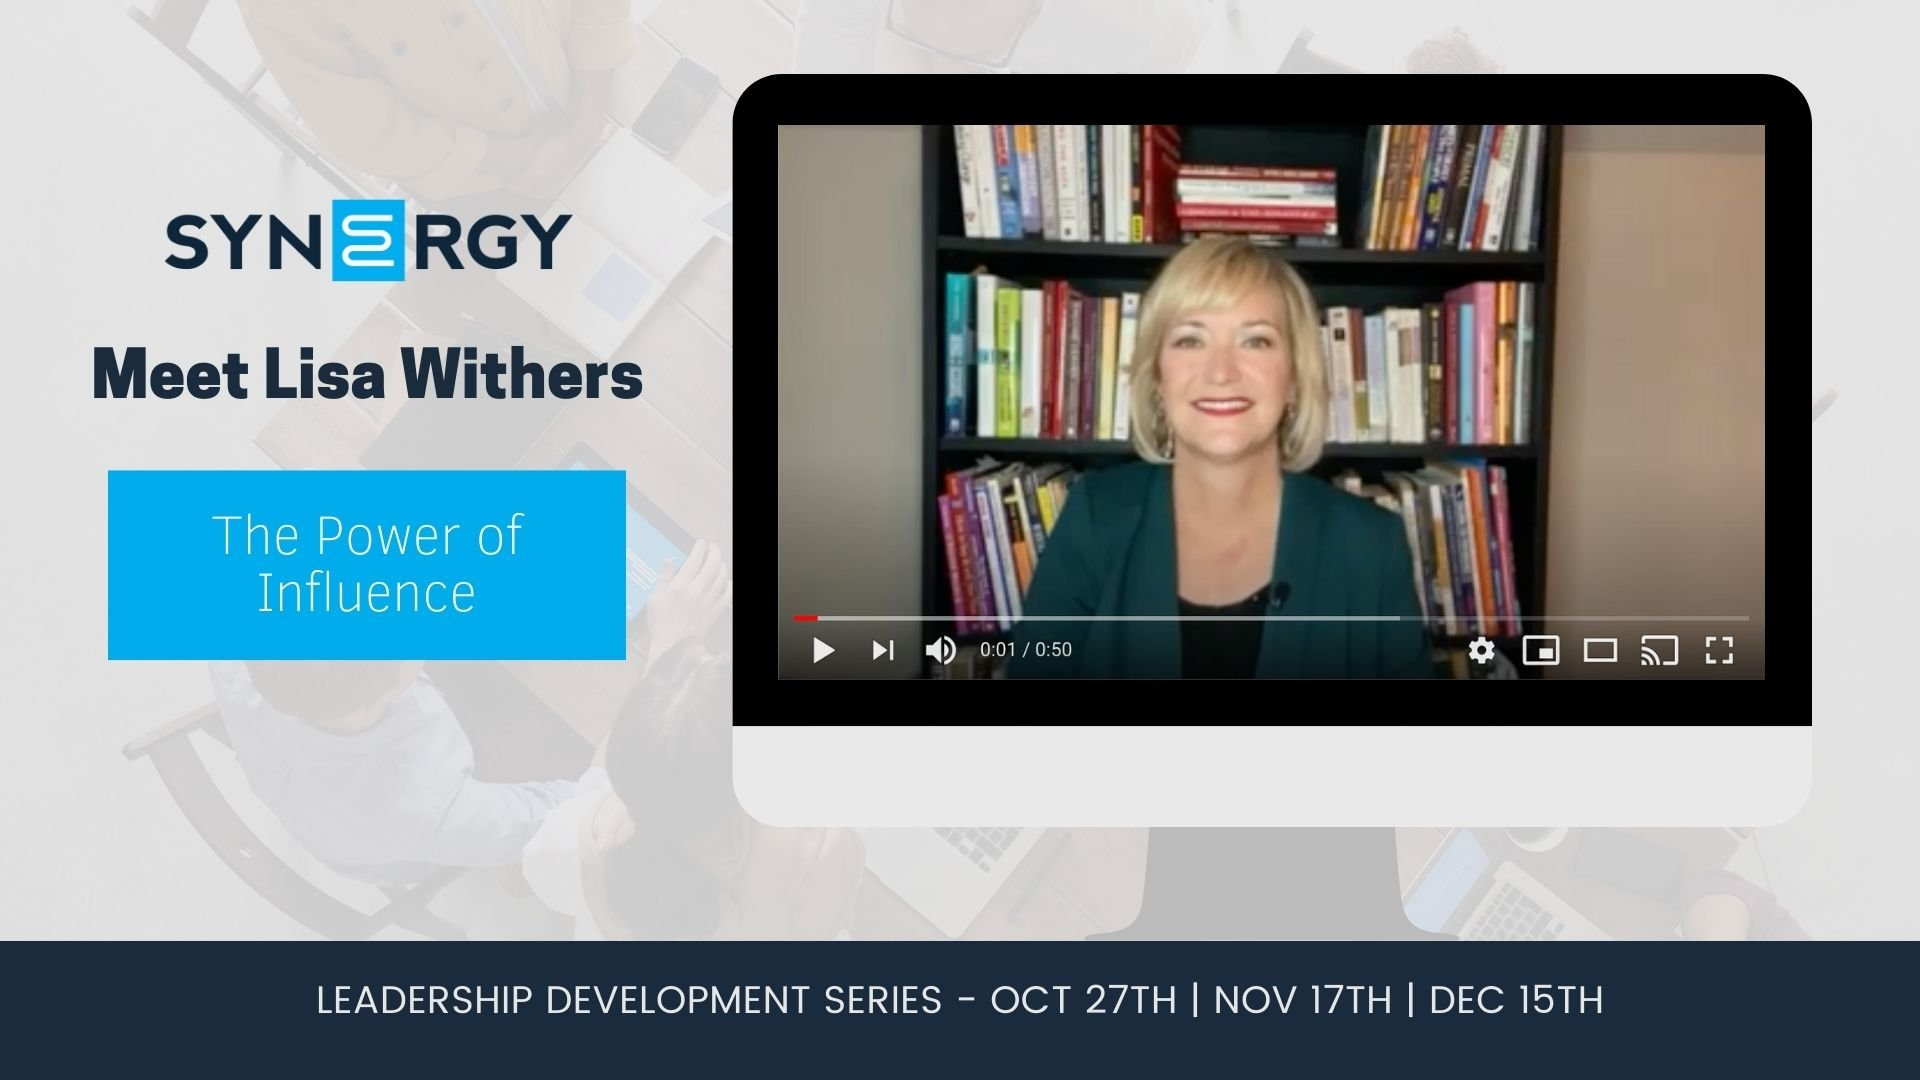 The Power of Influence with Lisa Withers